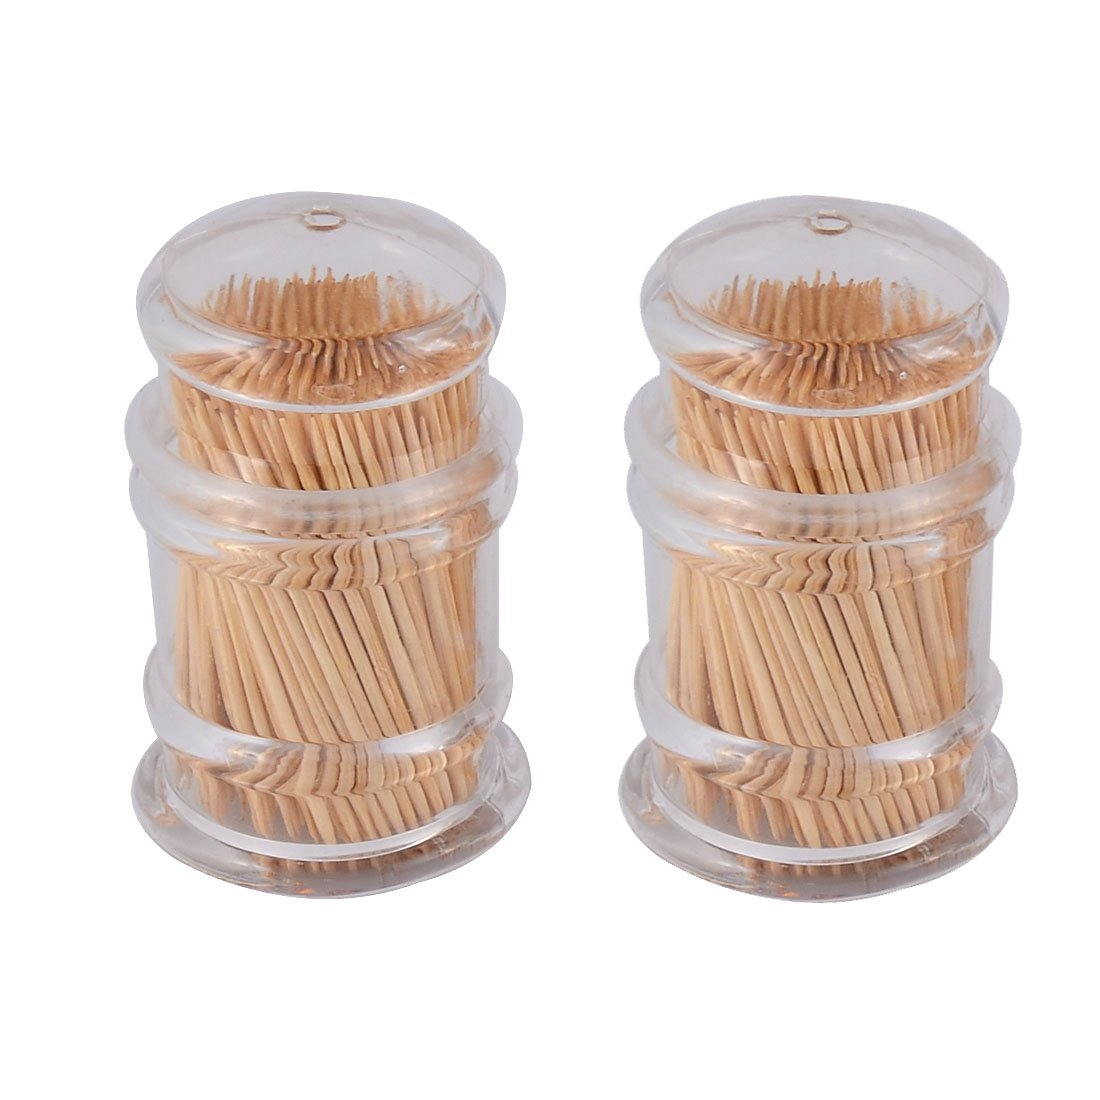 uxcell Plastic Home Restaurant Case Box Holder Container 2pcs Clear w Toothpicks a16031700ux0278